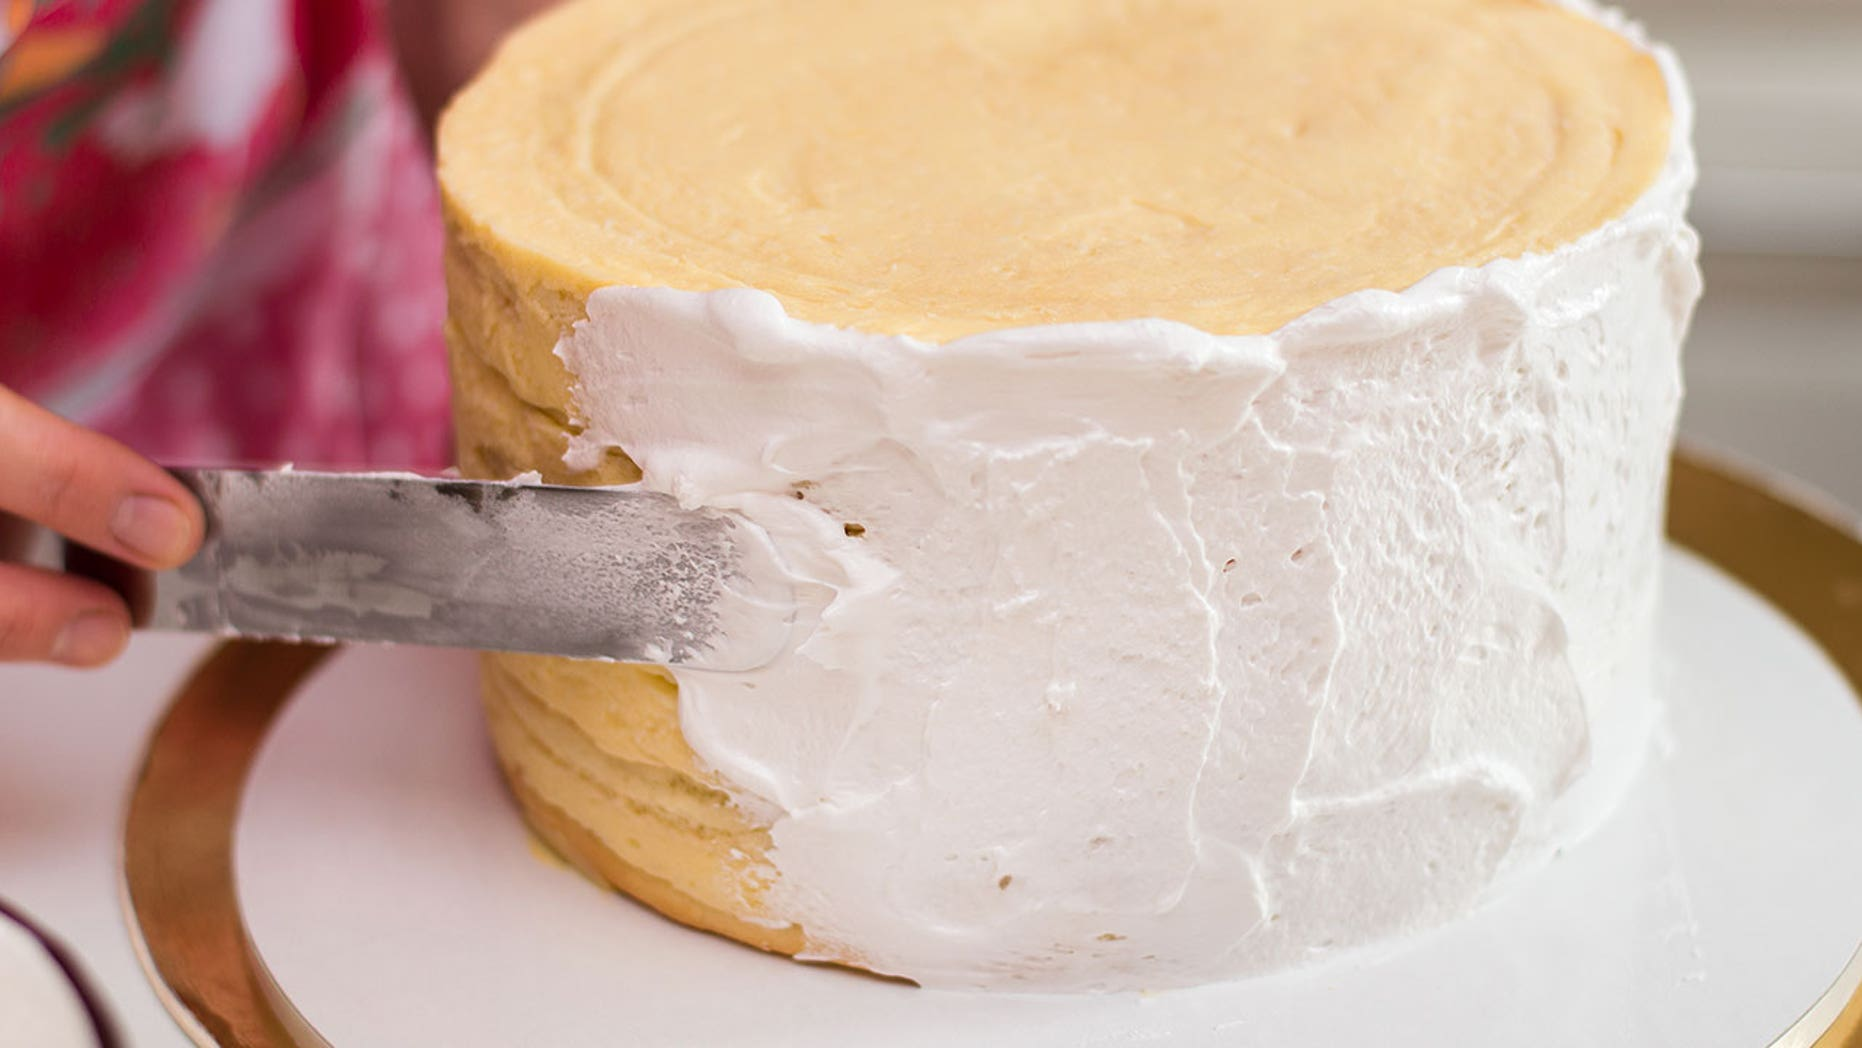 Epicurious shares its tips for frosting a cake like a pro.